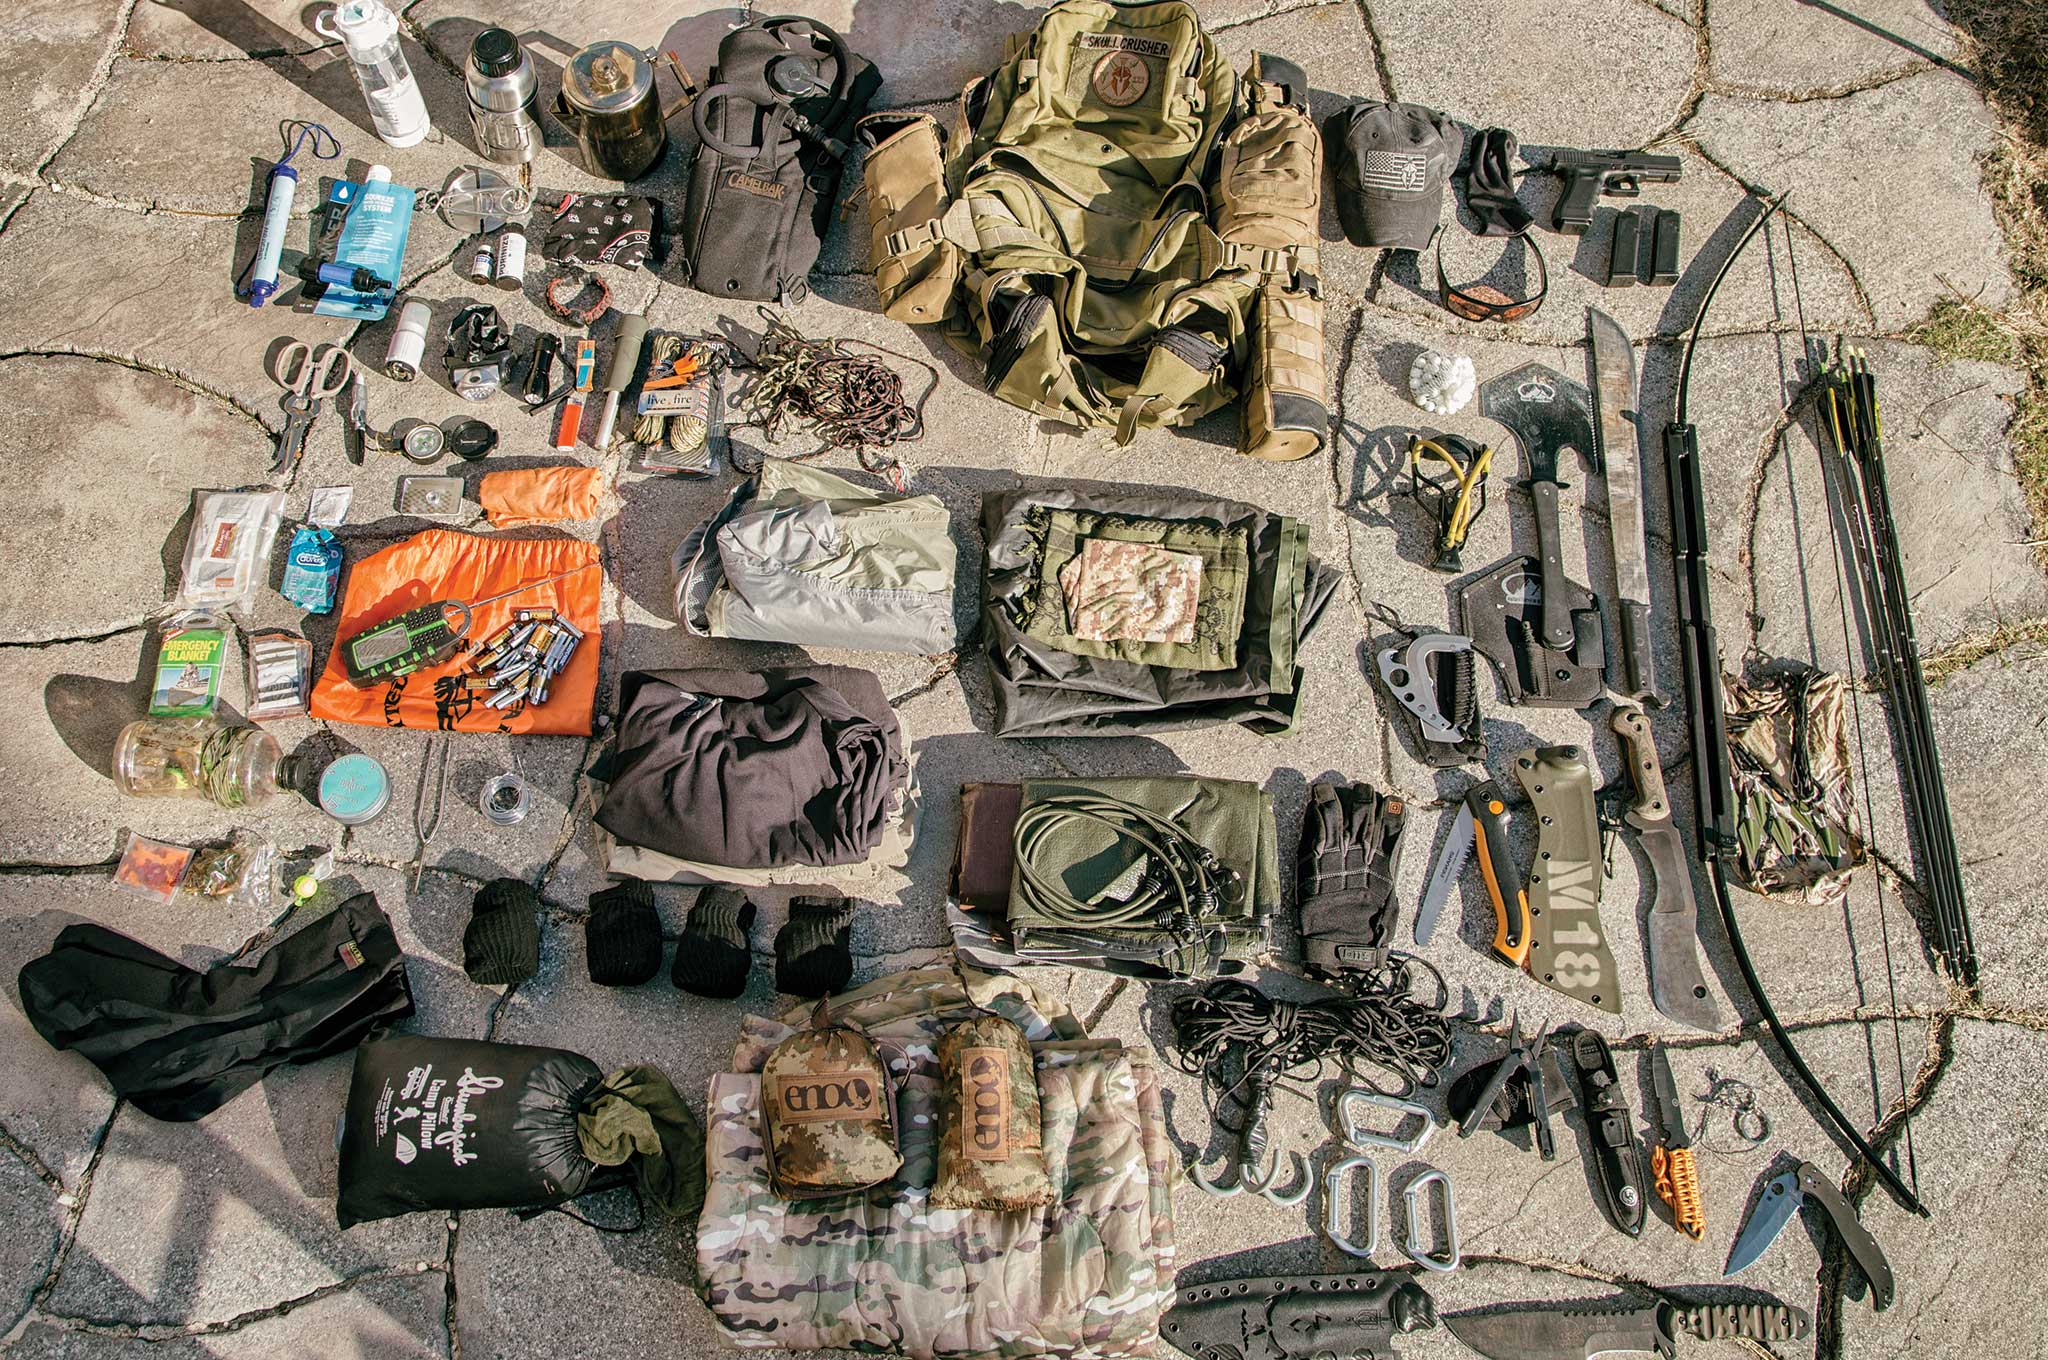 Contrary to a bug out bag, the contents of Snyder's long-term survival nomad pack have enough supplies and gear to get him through dire situations that last more than 72 hours.